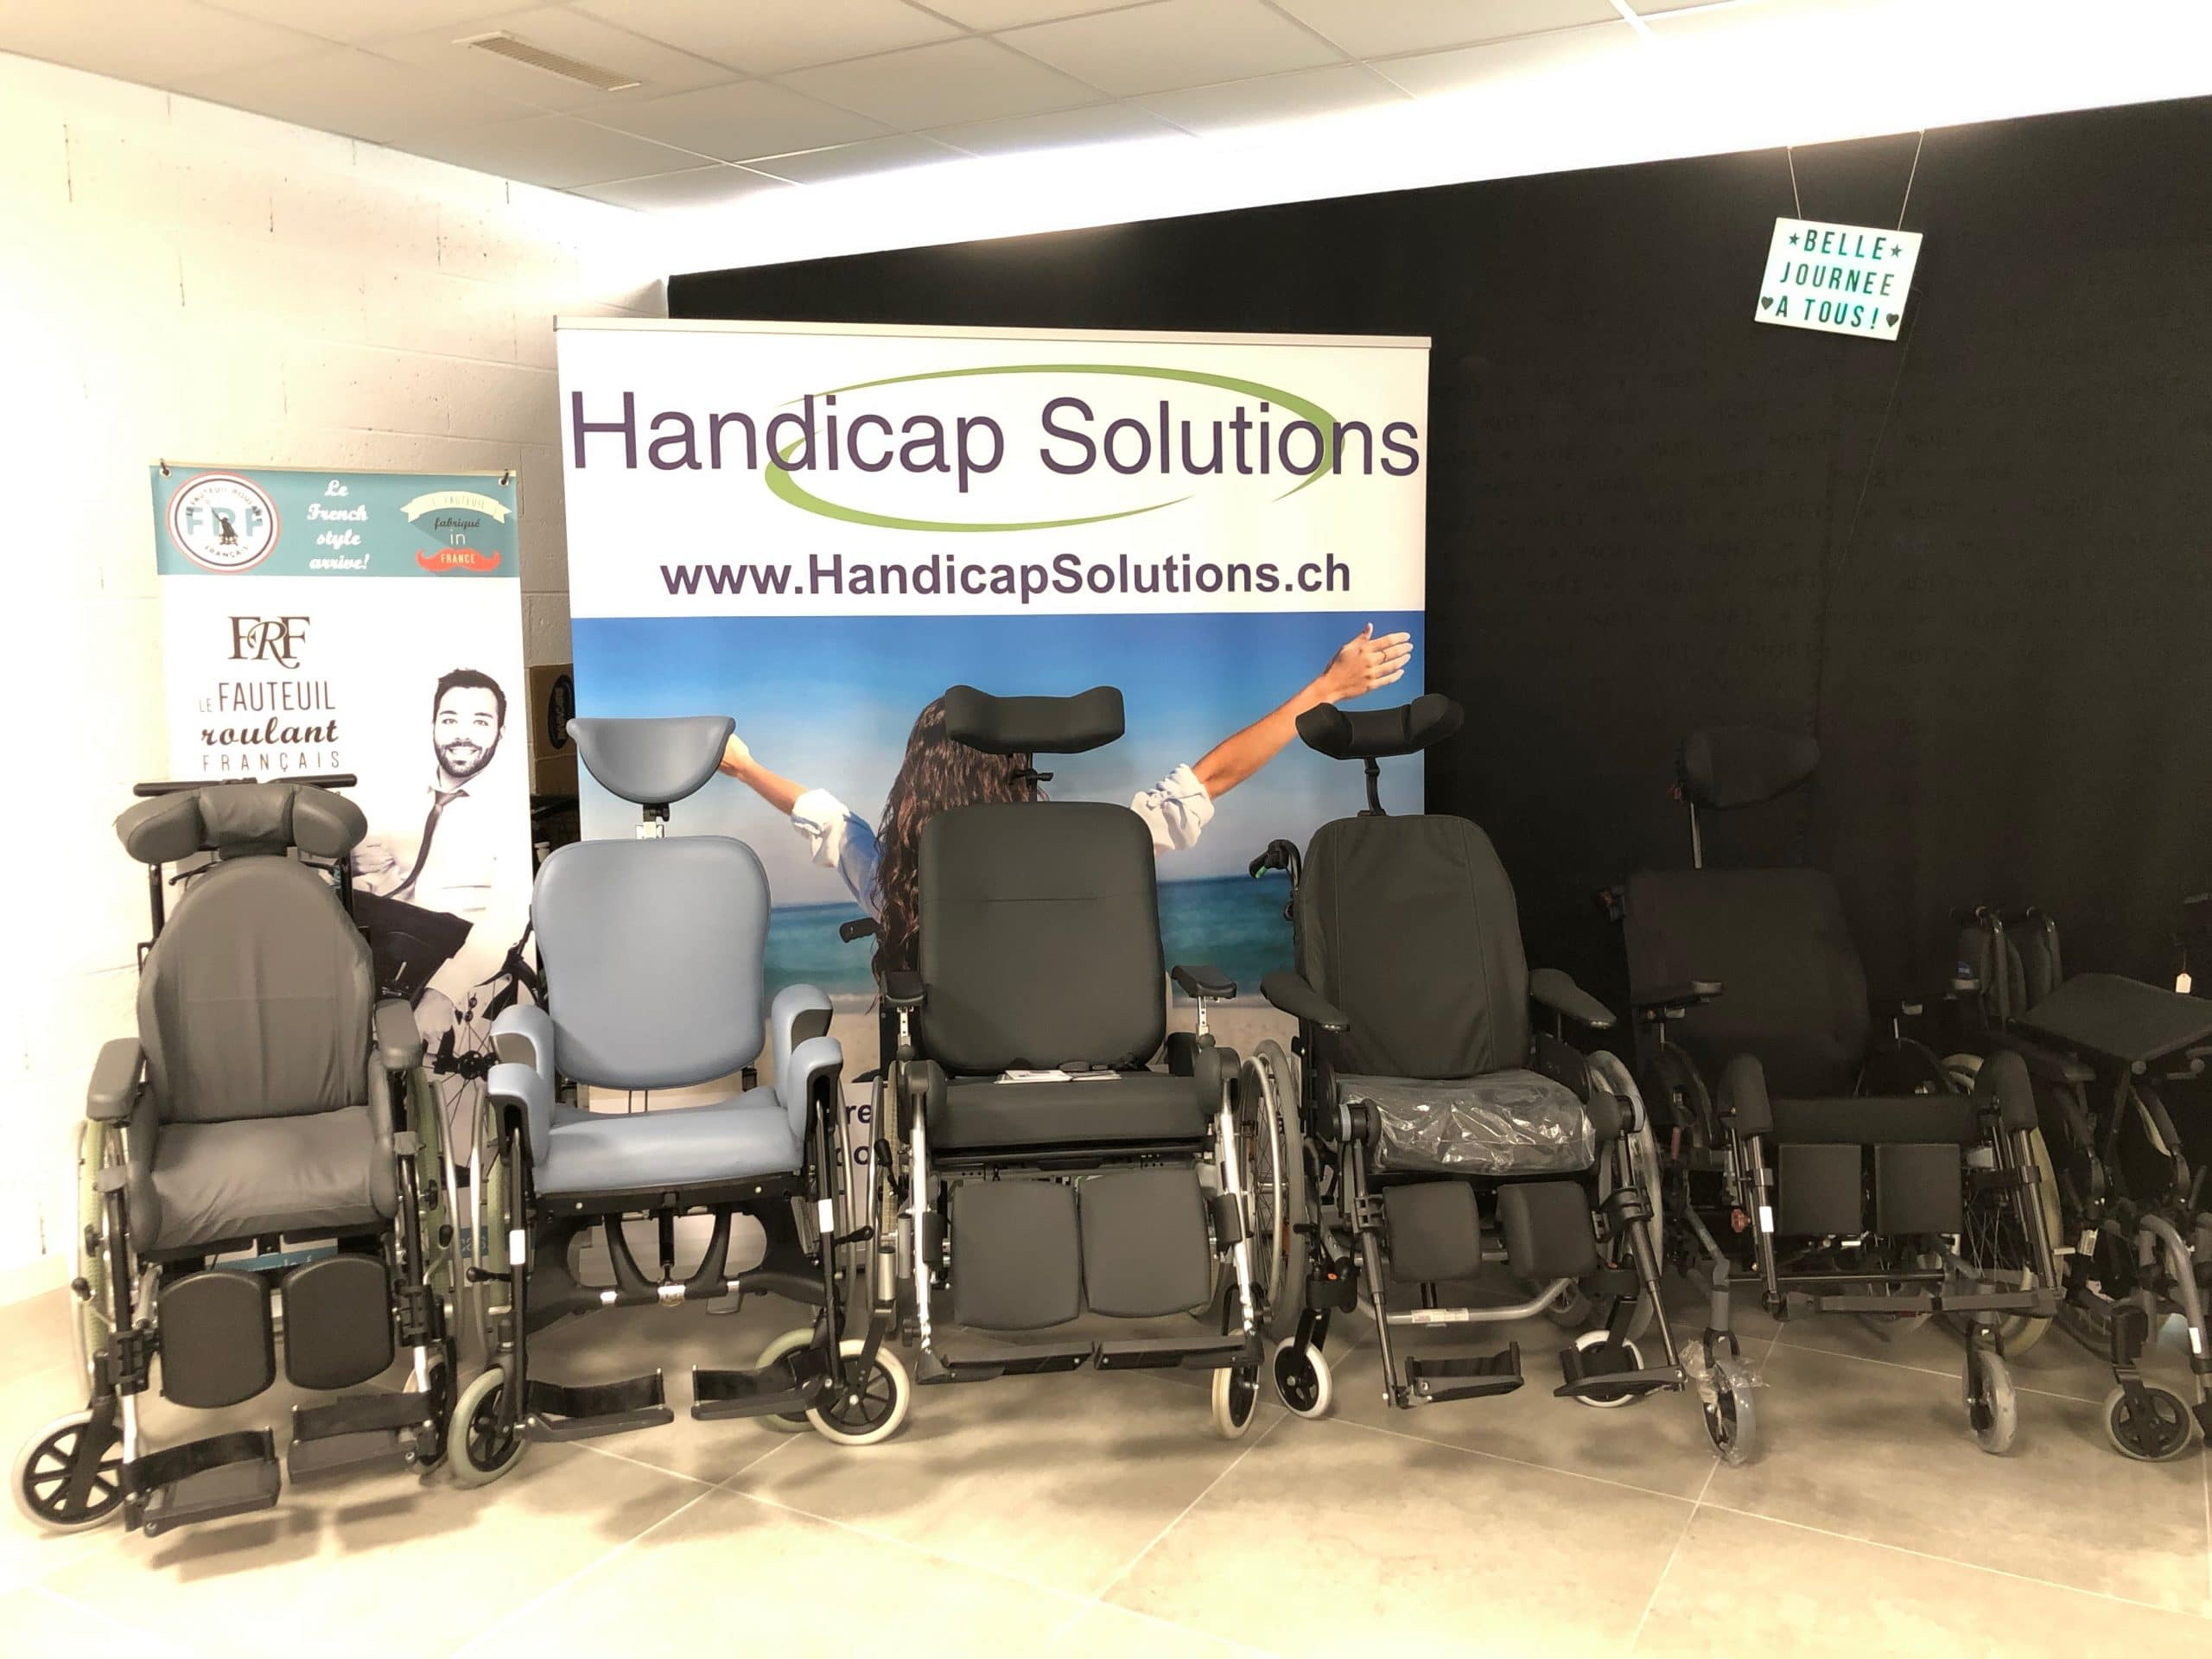 SHOWROOM HANDICAP SOLUTIONS MONTHEY SUISSE